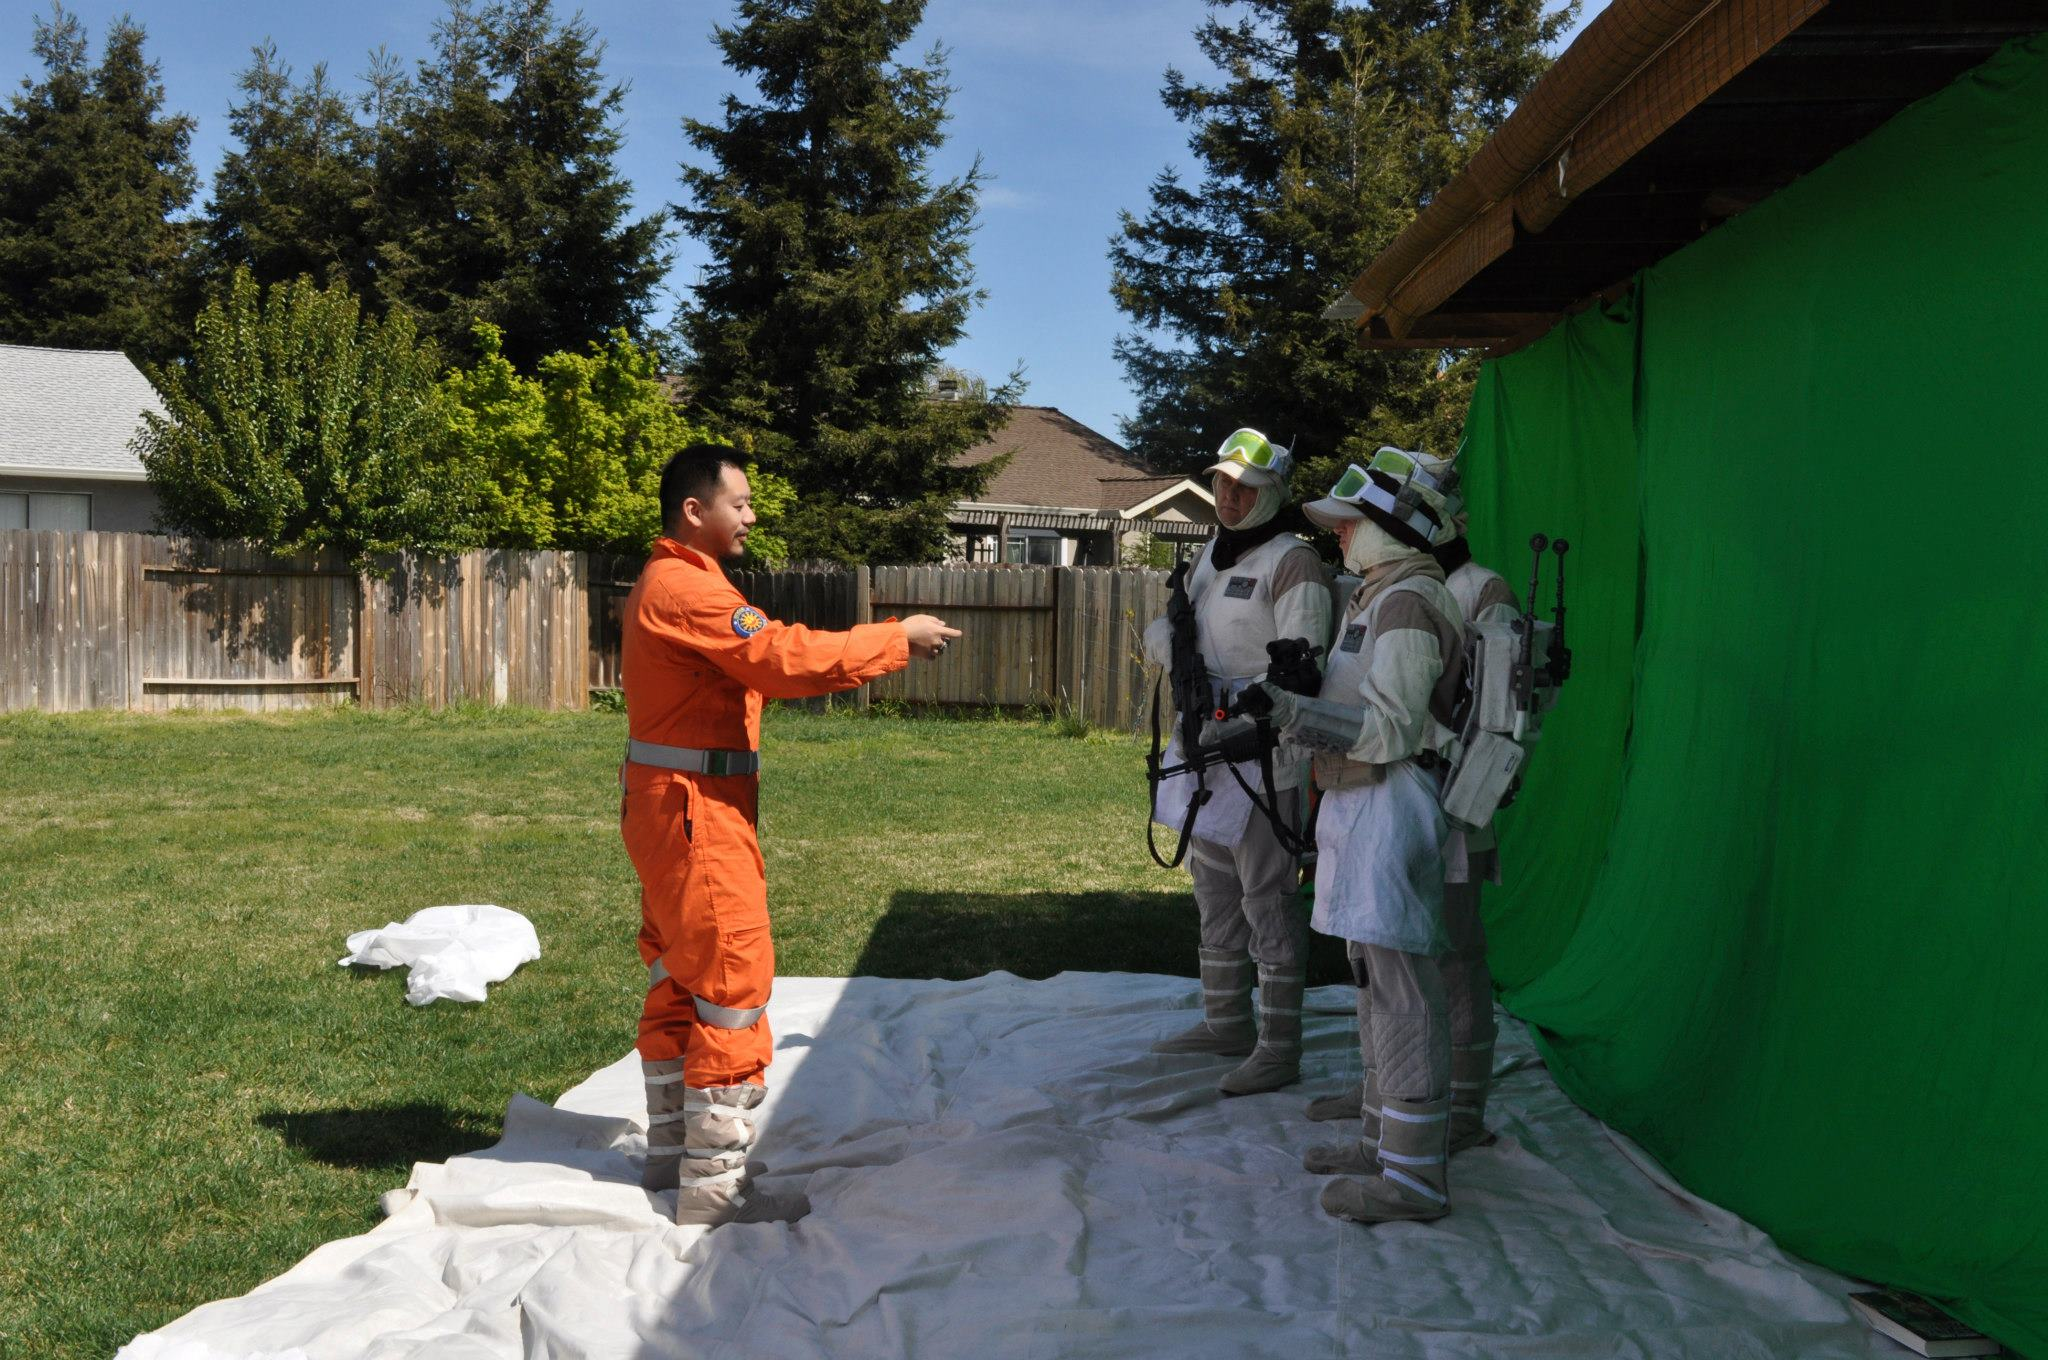 Color photo of man in orange jumpsuit directing two men dressed in rebel soldier uniforms standing in front of a green screen in a backyard.